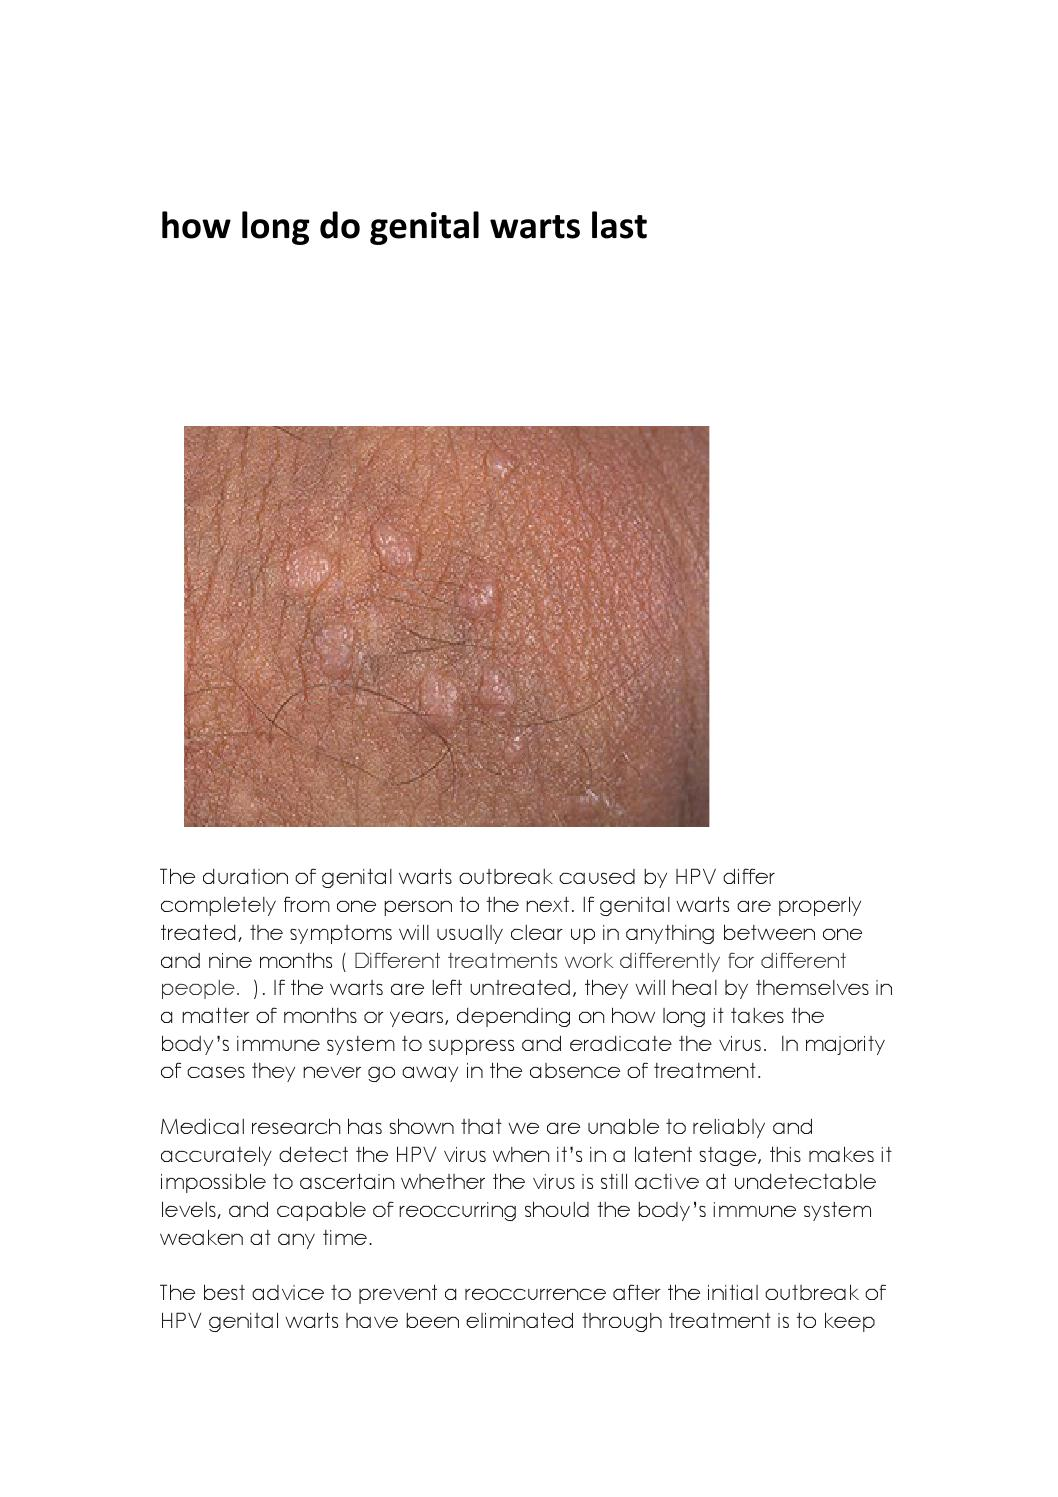 hpv wart go away